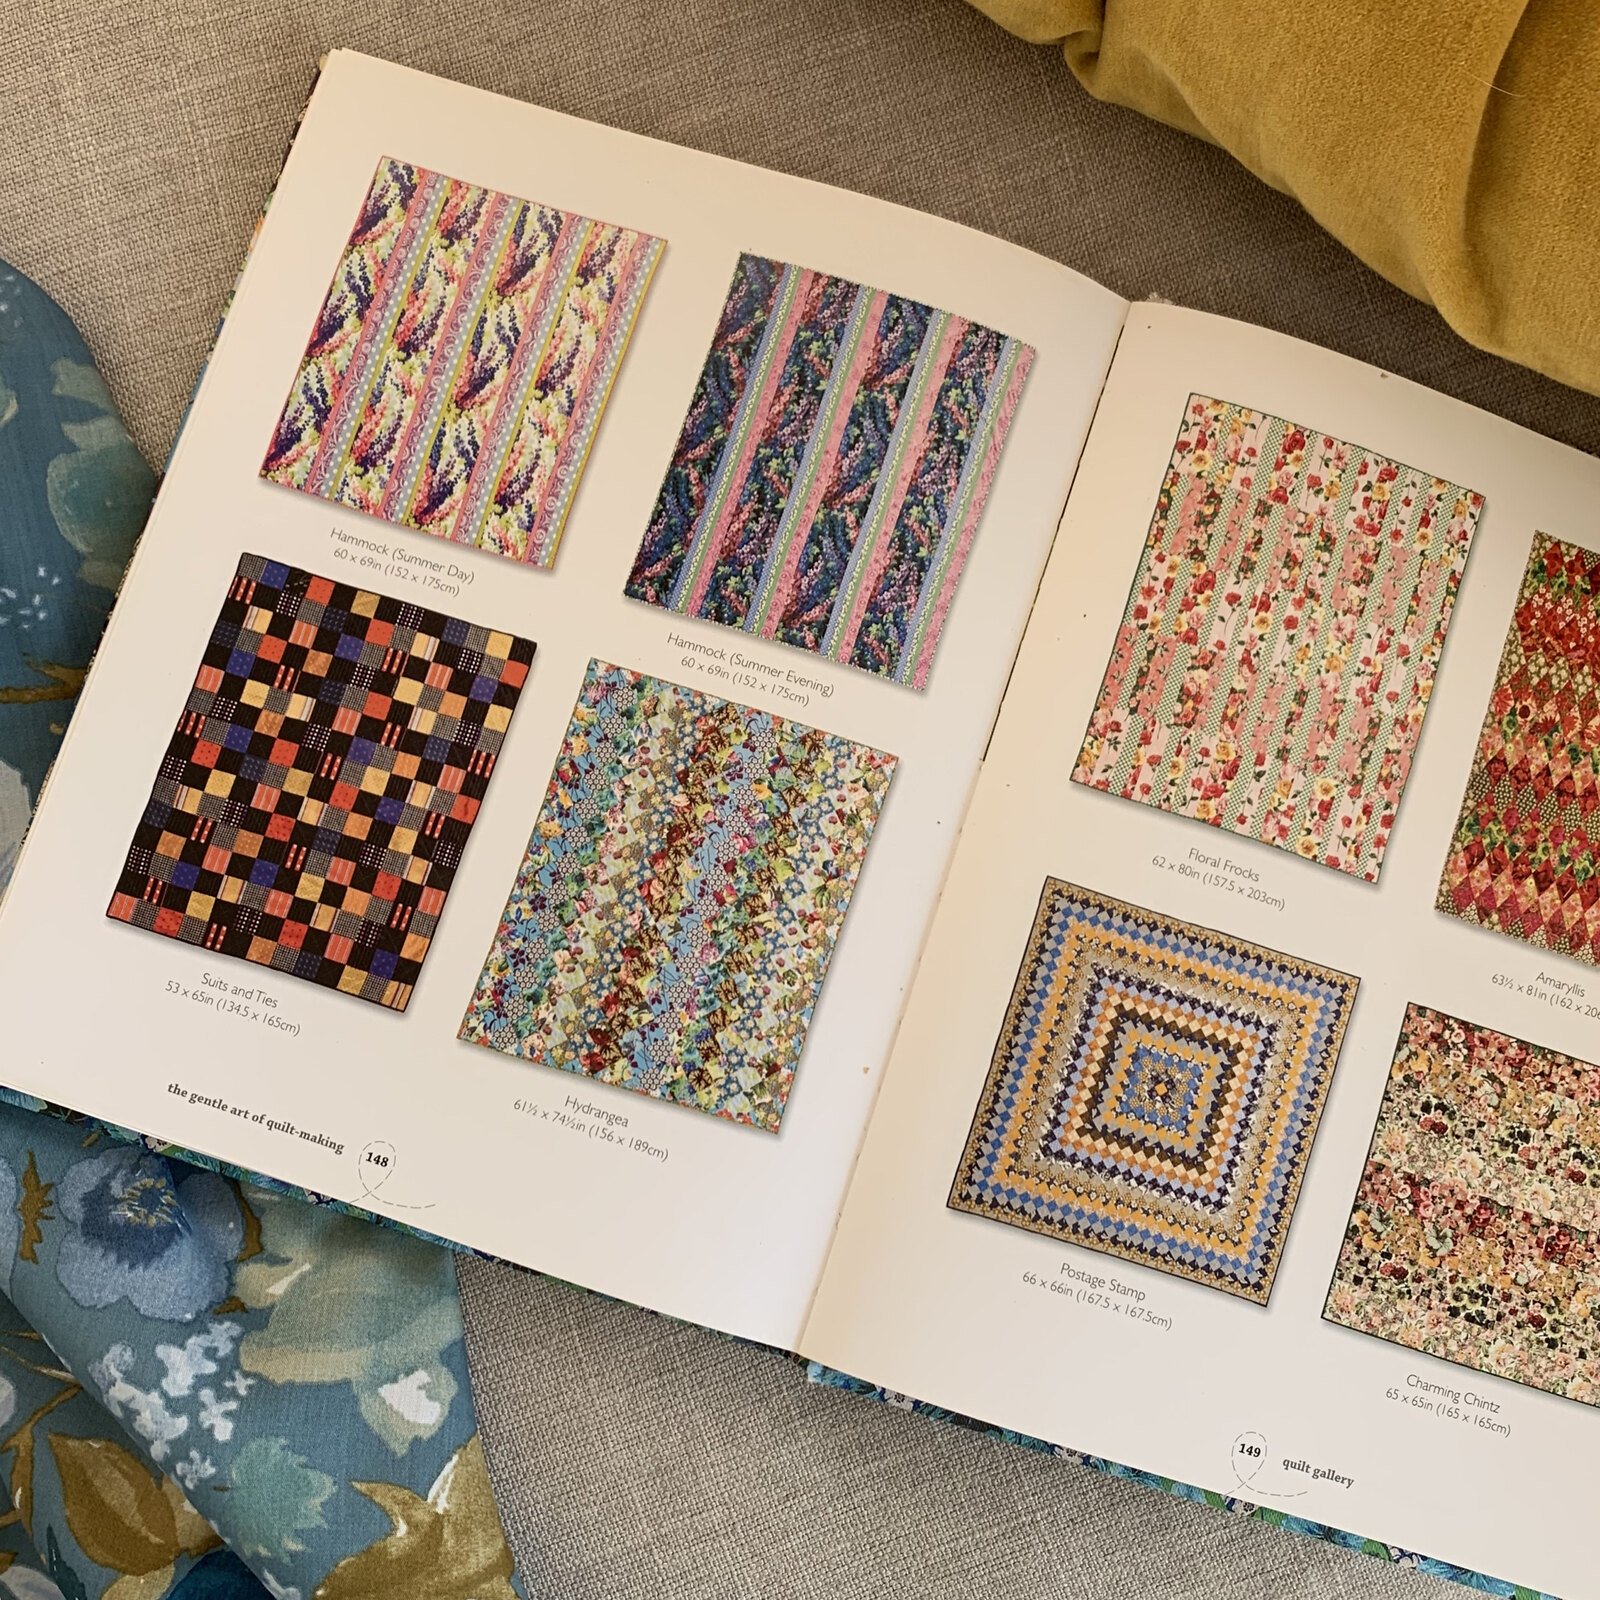 Jane Brocket's Gentle Art of Quilt-Making book